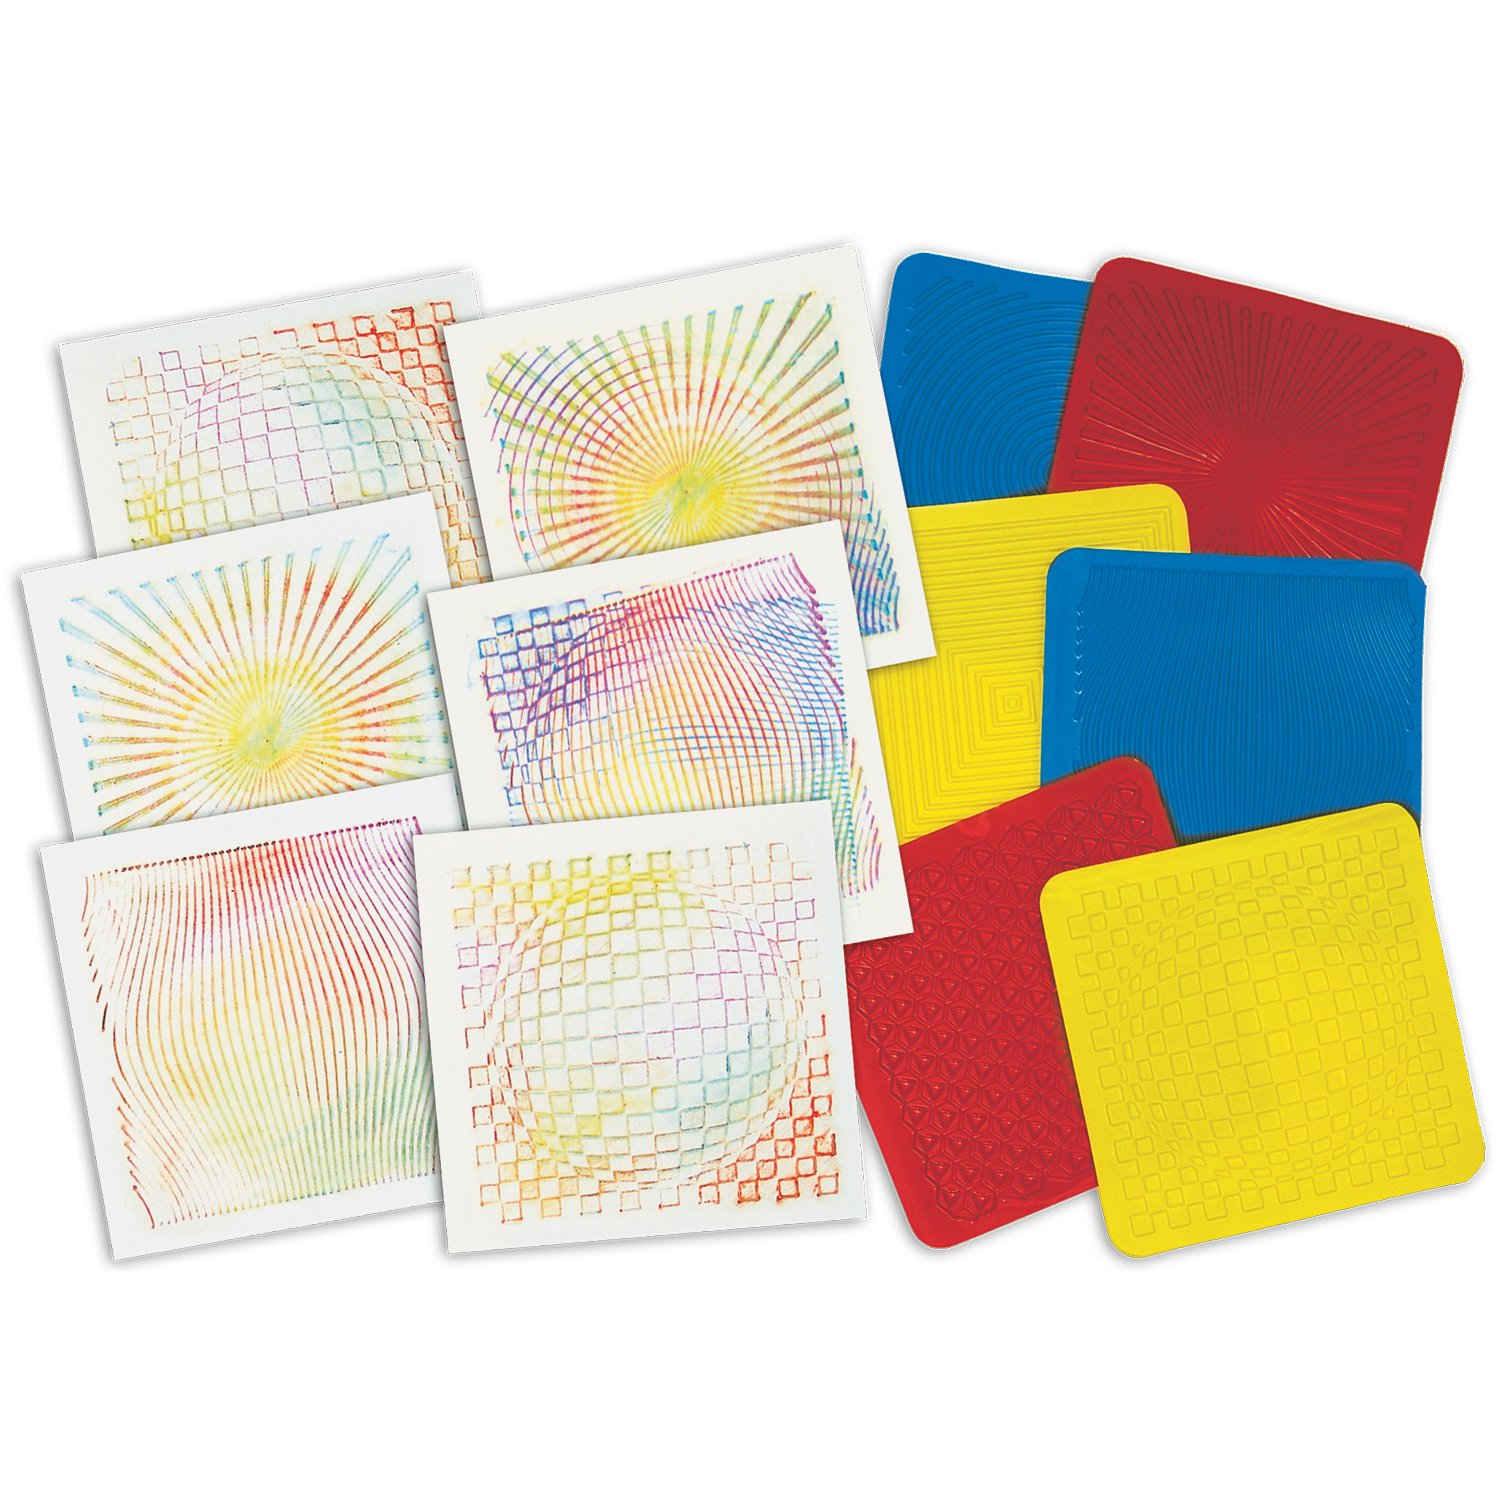 ROYLCO R5841 Optical Illusion 7 by 7-Inch Rubbing Plates, 6-Pack by Roylco